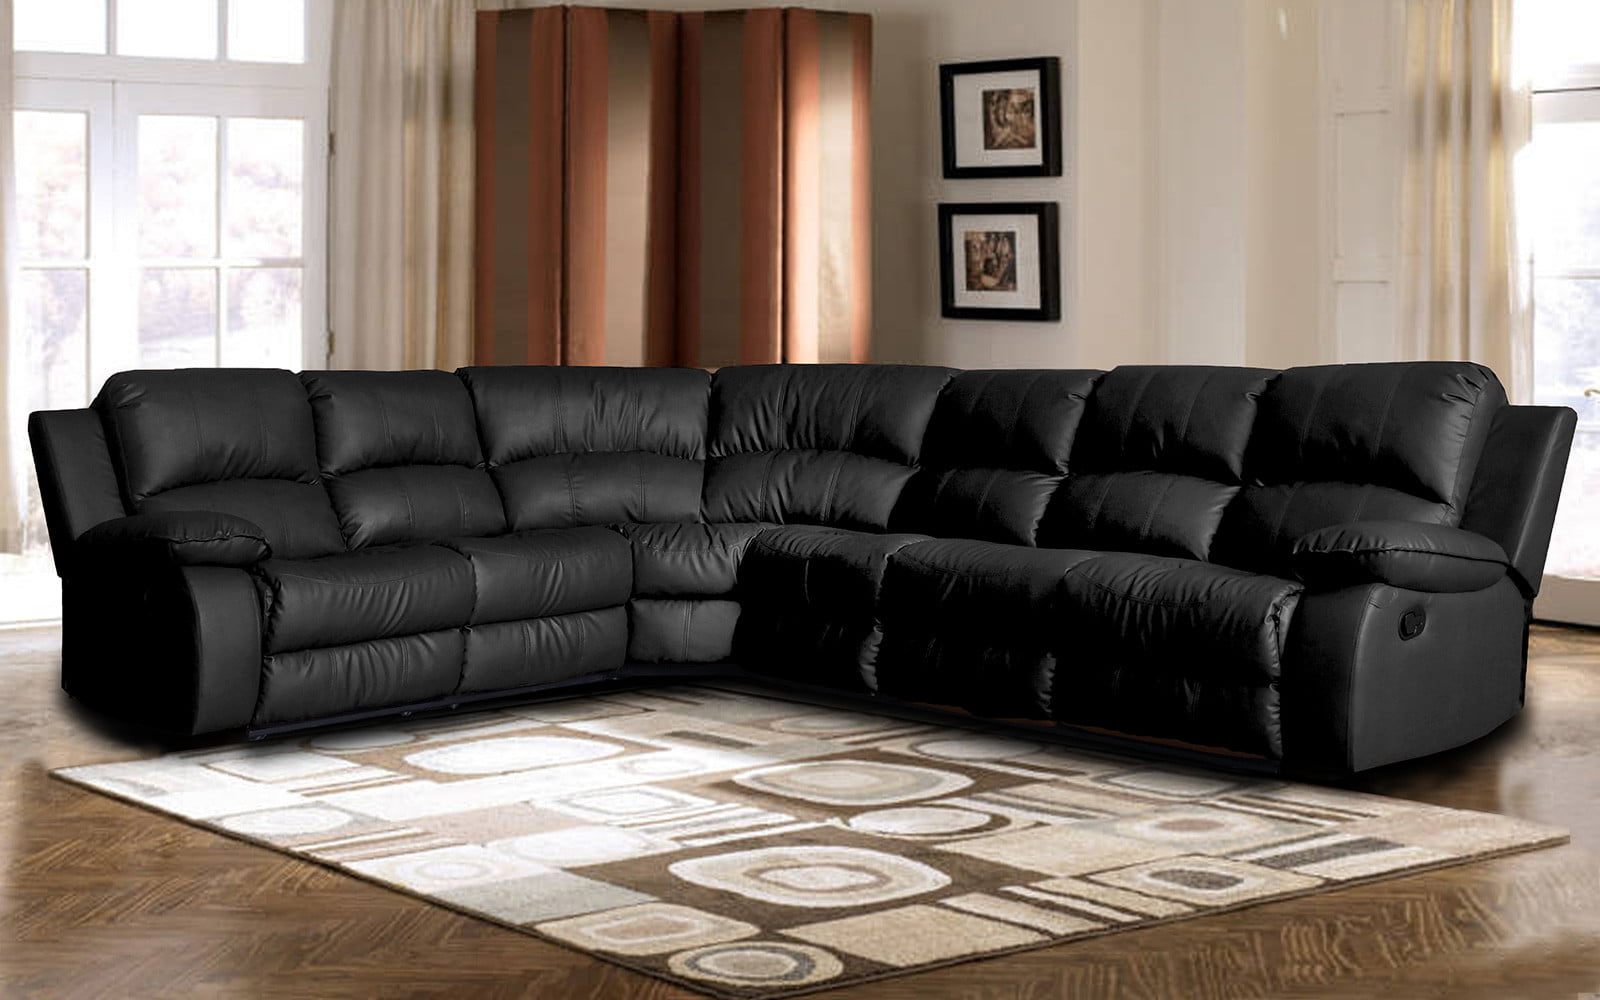 get sofas modern online sofa chaise black sectional shaped your home full with perfect for leather cream small couch sectionals corner rooms size spaces of l cheap loveseat the